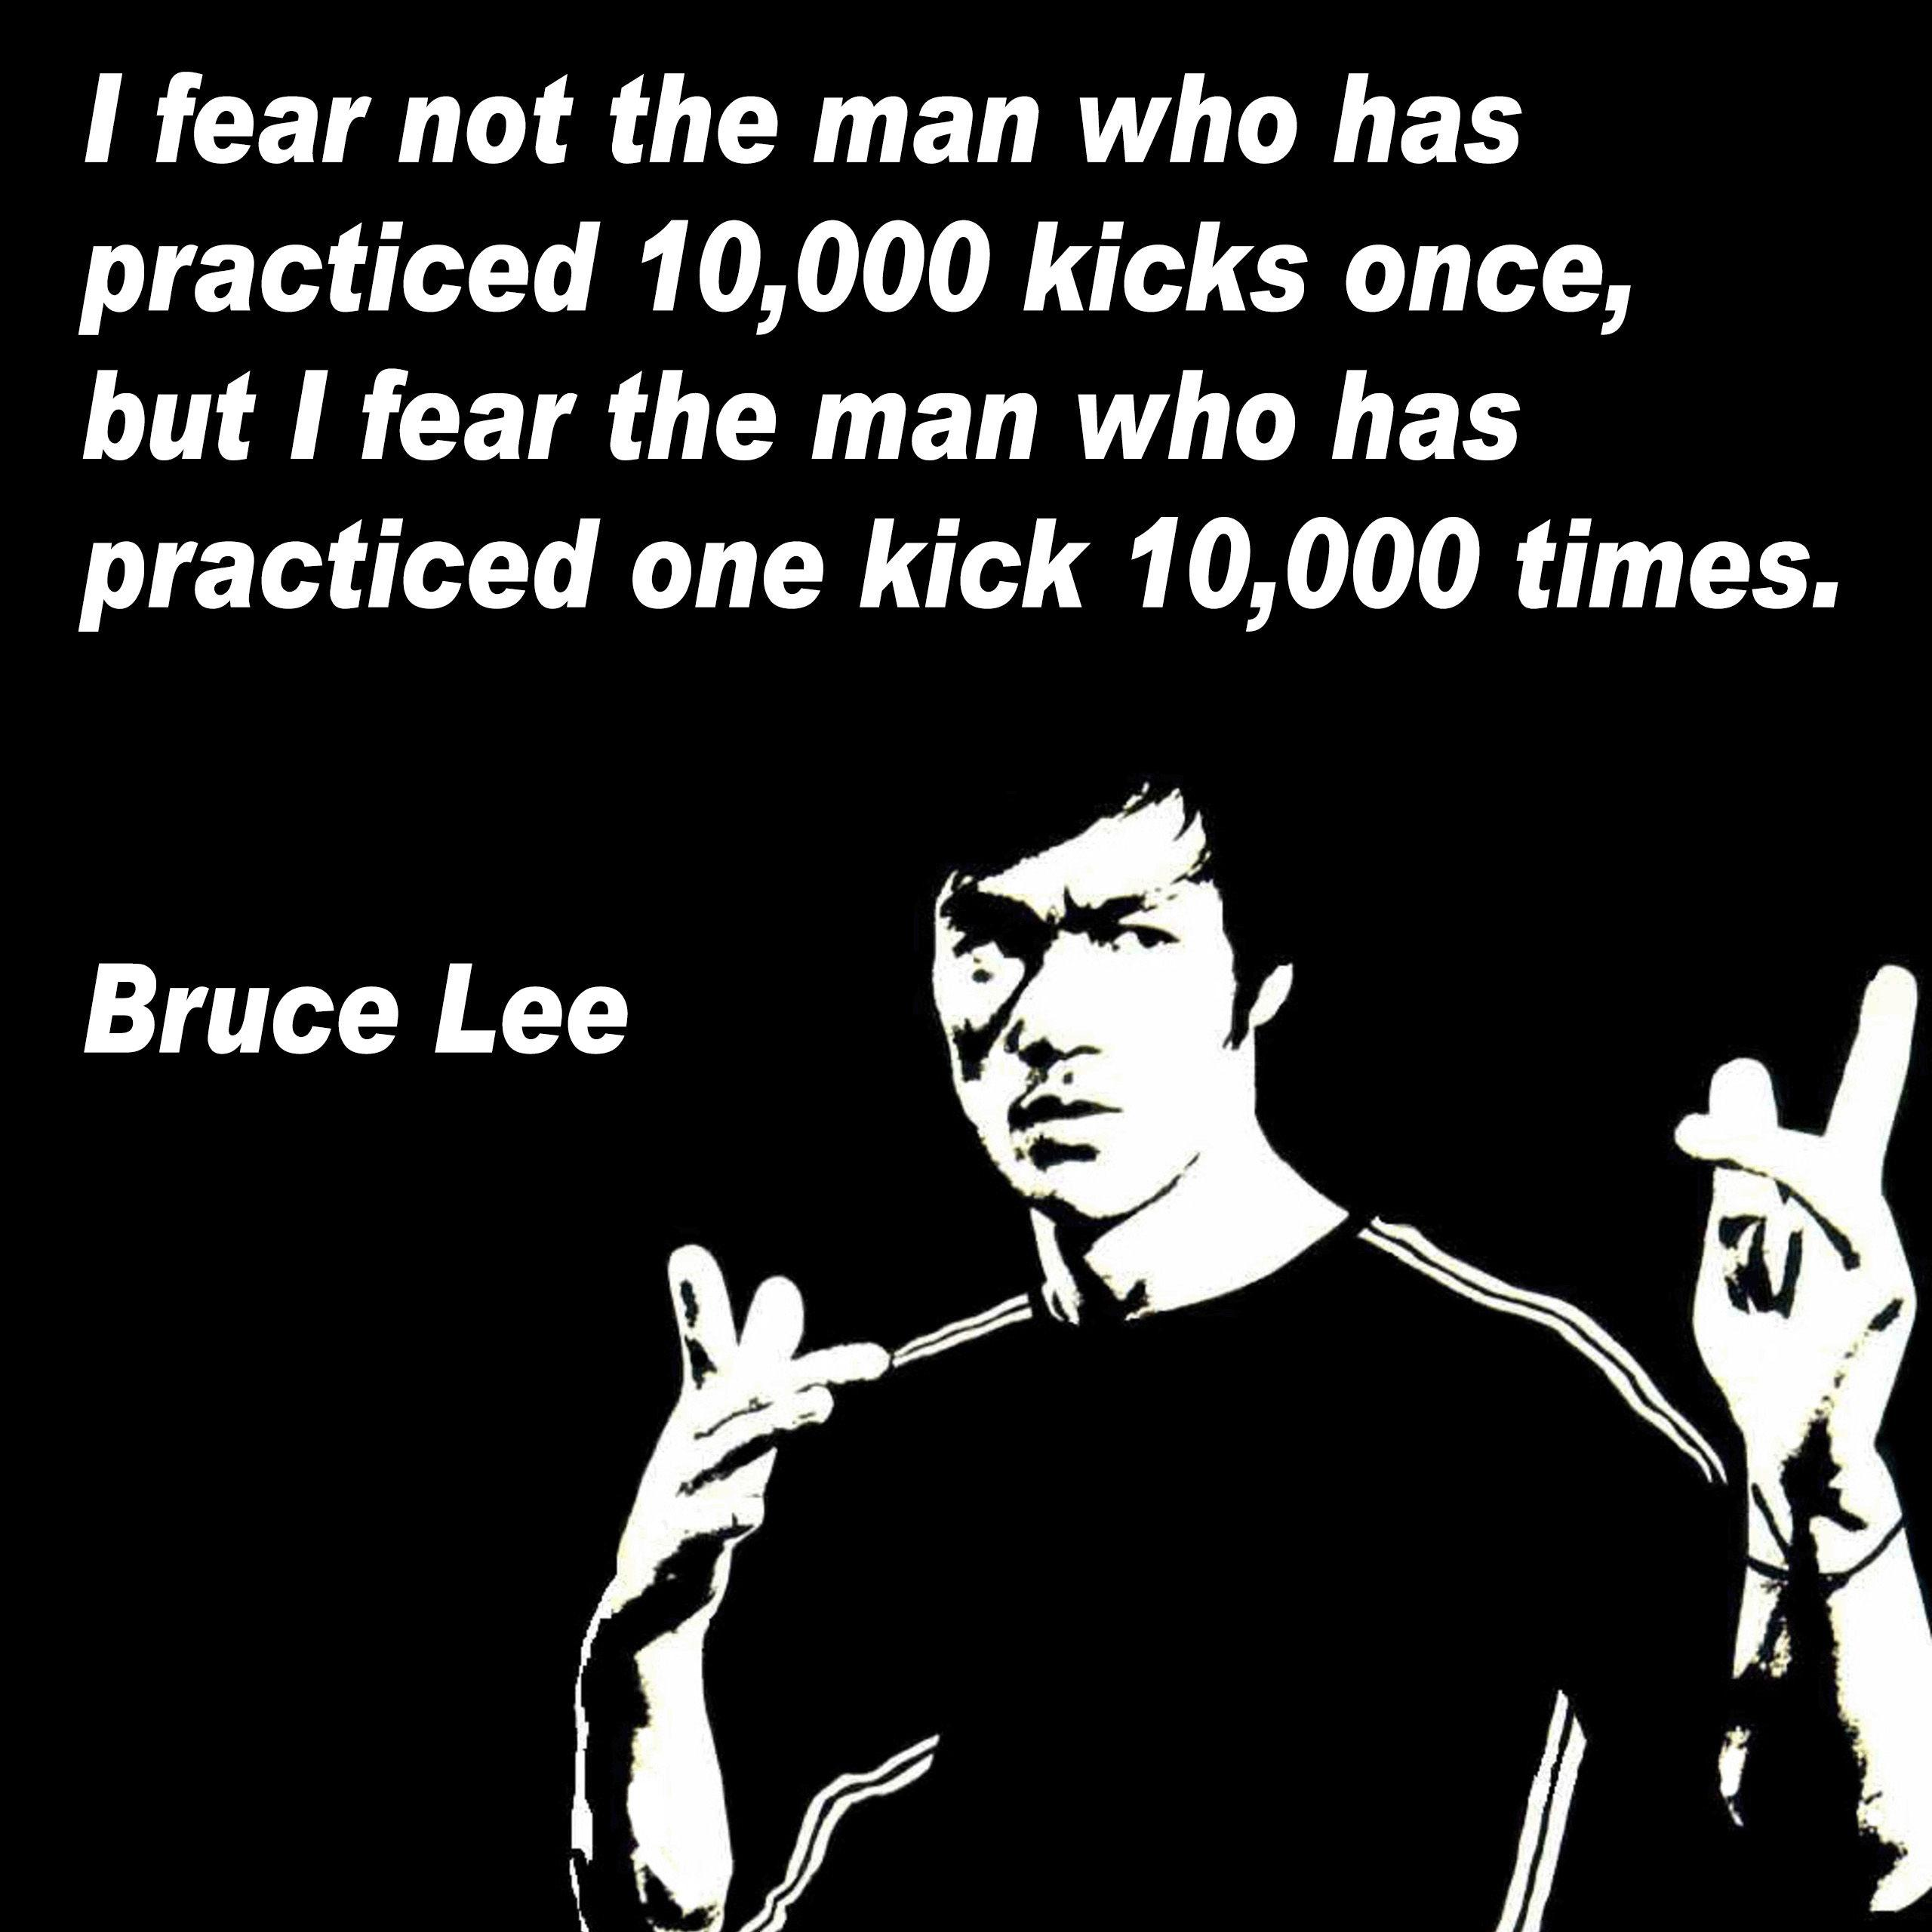 [Image] I fear not the man who has practiced 10,000 kicks once, but I fear the man who has practiced one kick 10,000 times. Bruce Lee